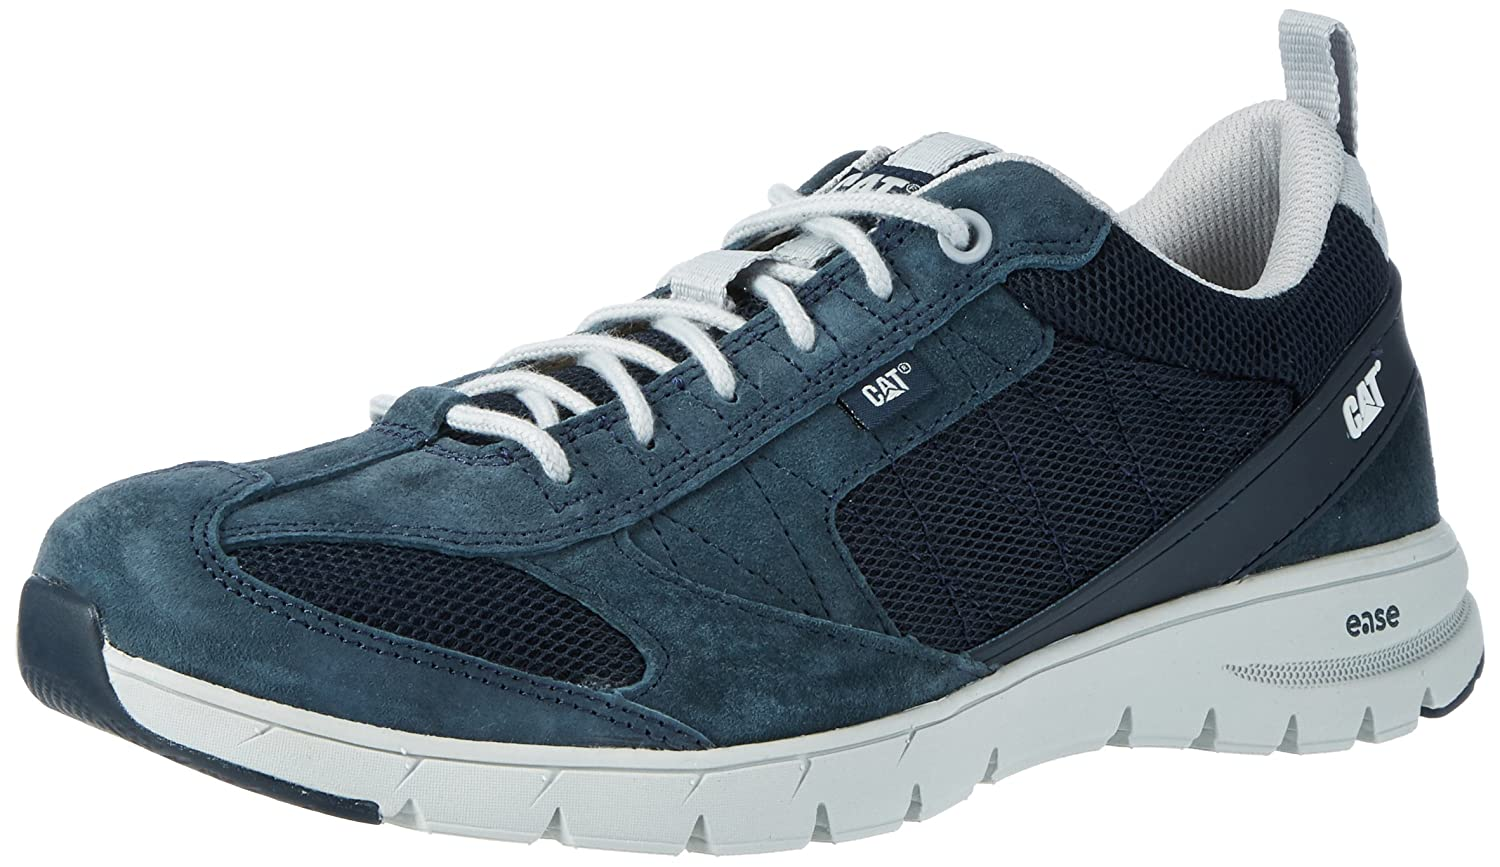 Herren Mythos Sneakers, Grau (Mens Dark Grey), 44 EU CAT